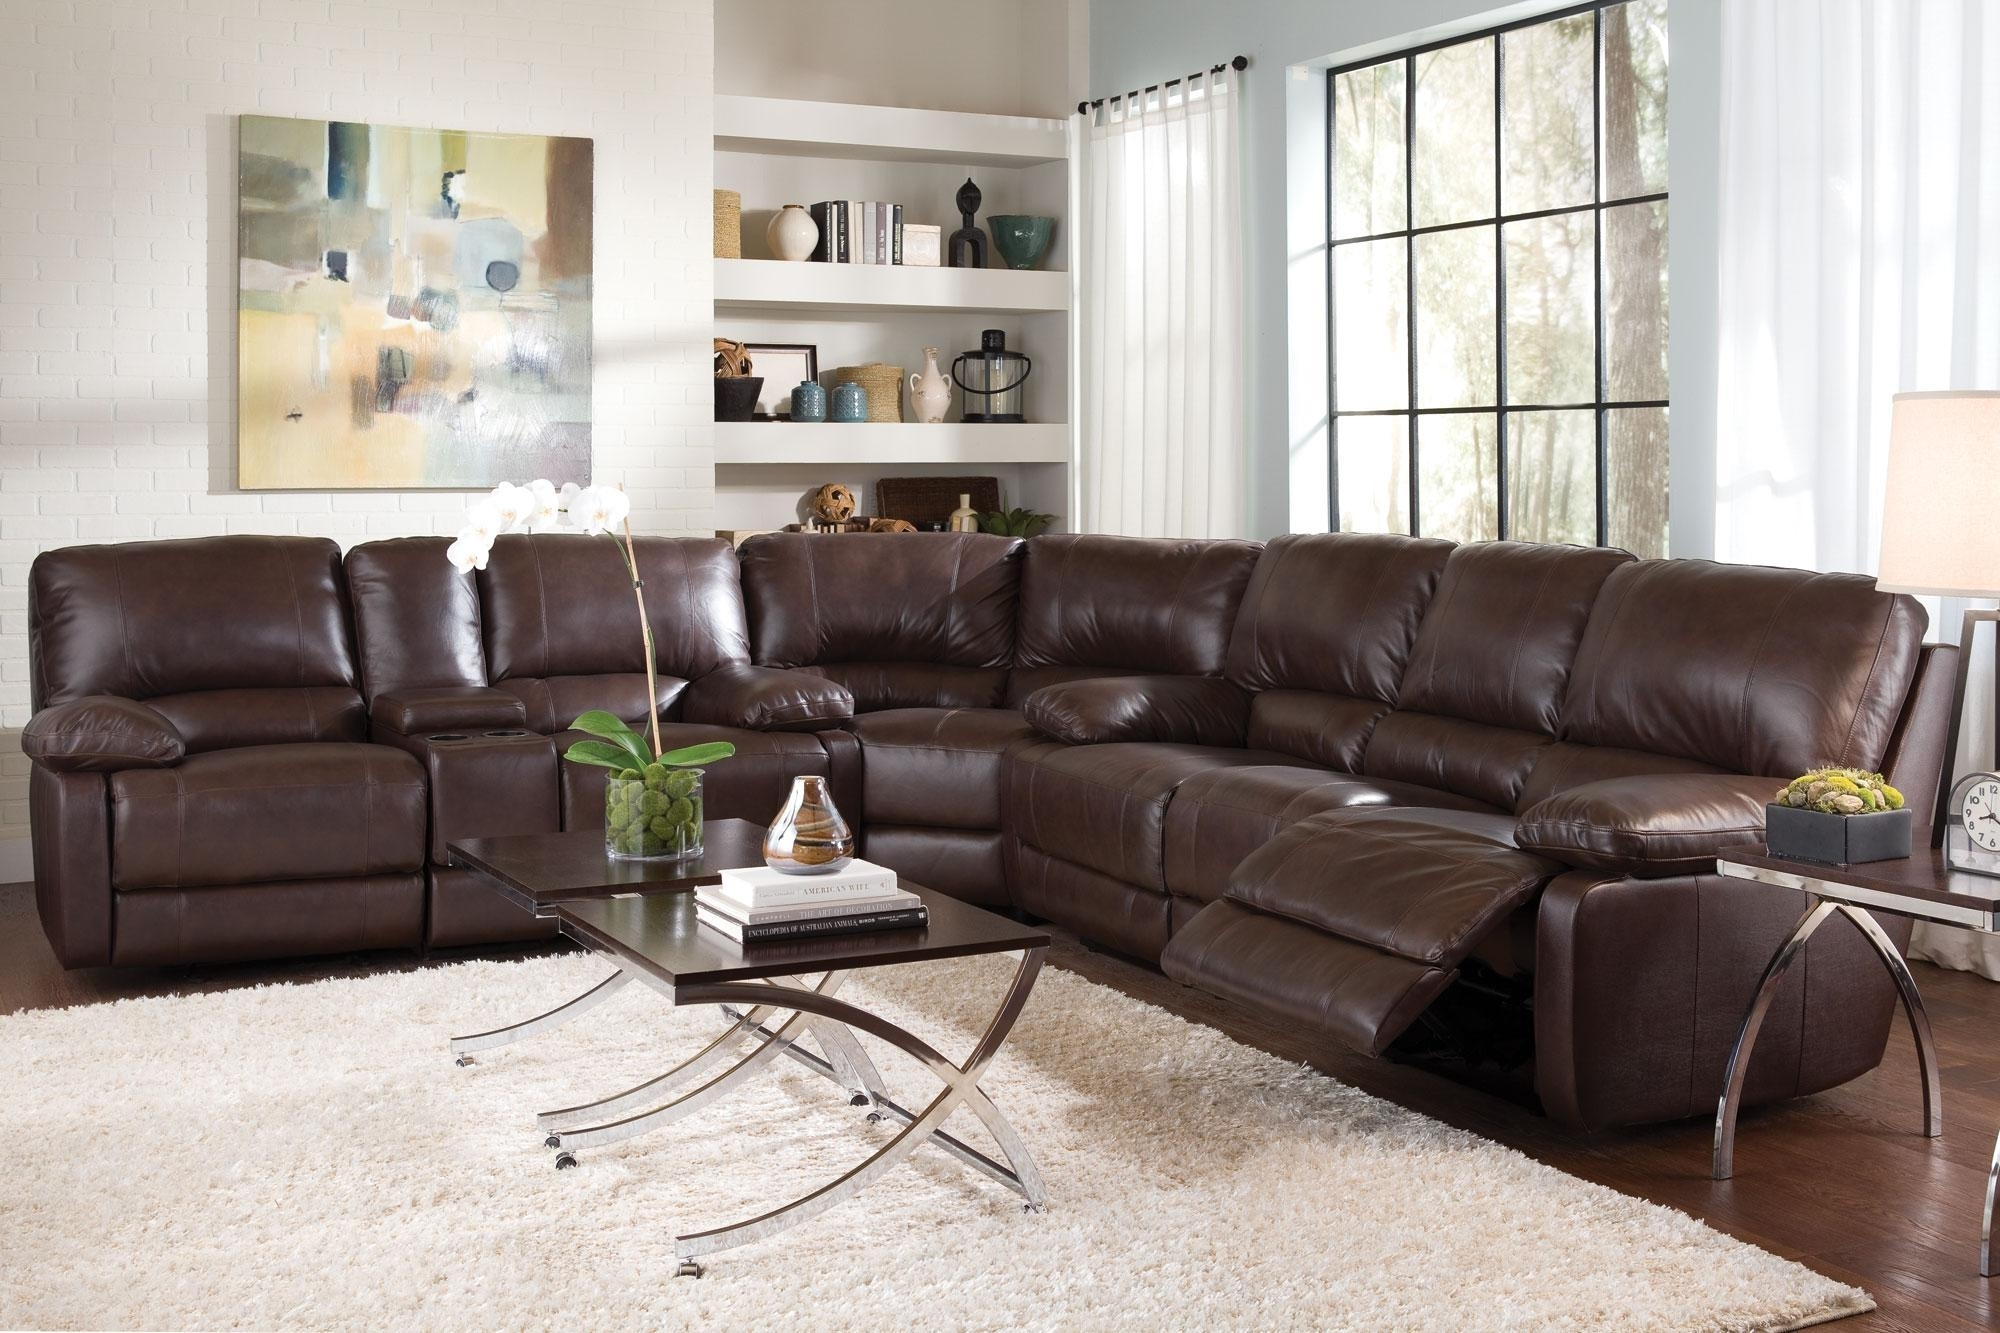 C600021Sset – Top Grain Leather Sectional Buy Itthe Piece Or Inside Leather Motion Sectional Sofas (View 9 of 10)